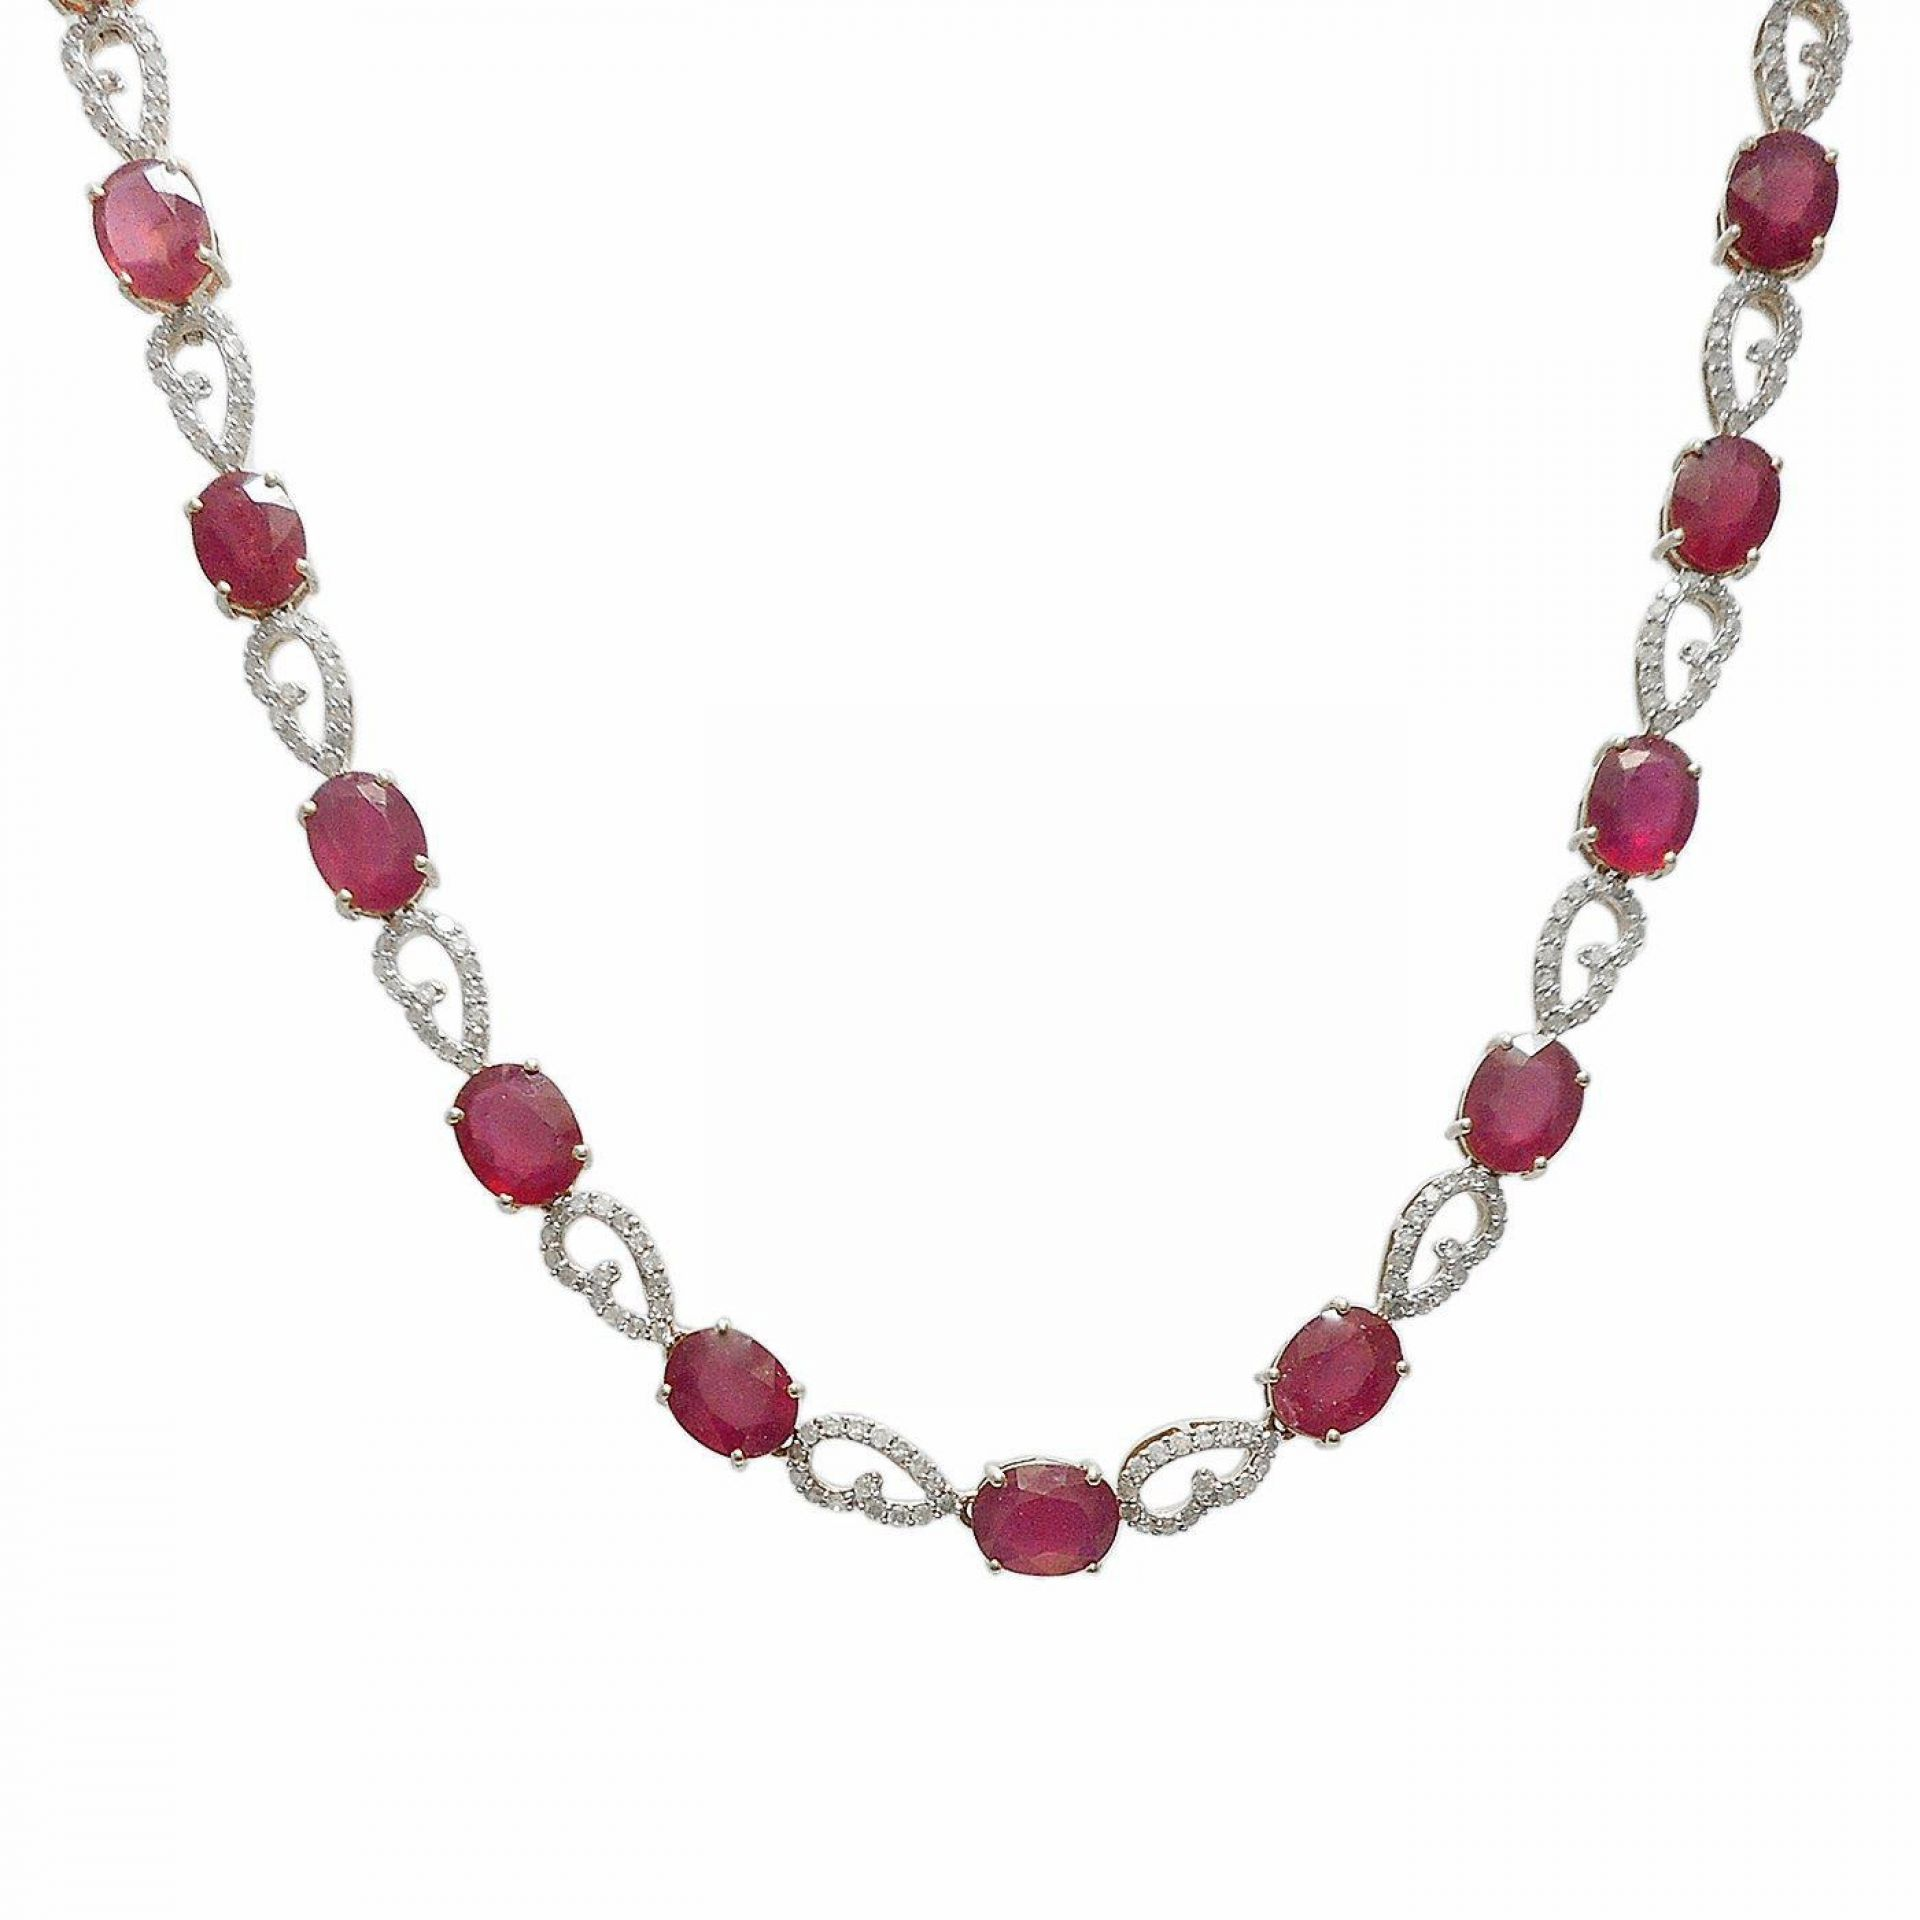 46.48ctw Ruby and 3.51ctw Diamond 14KT Yellow Gold Necklace